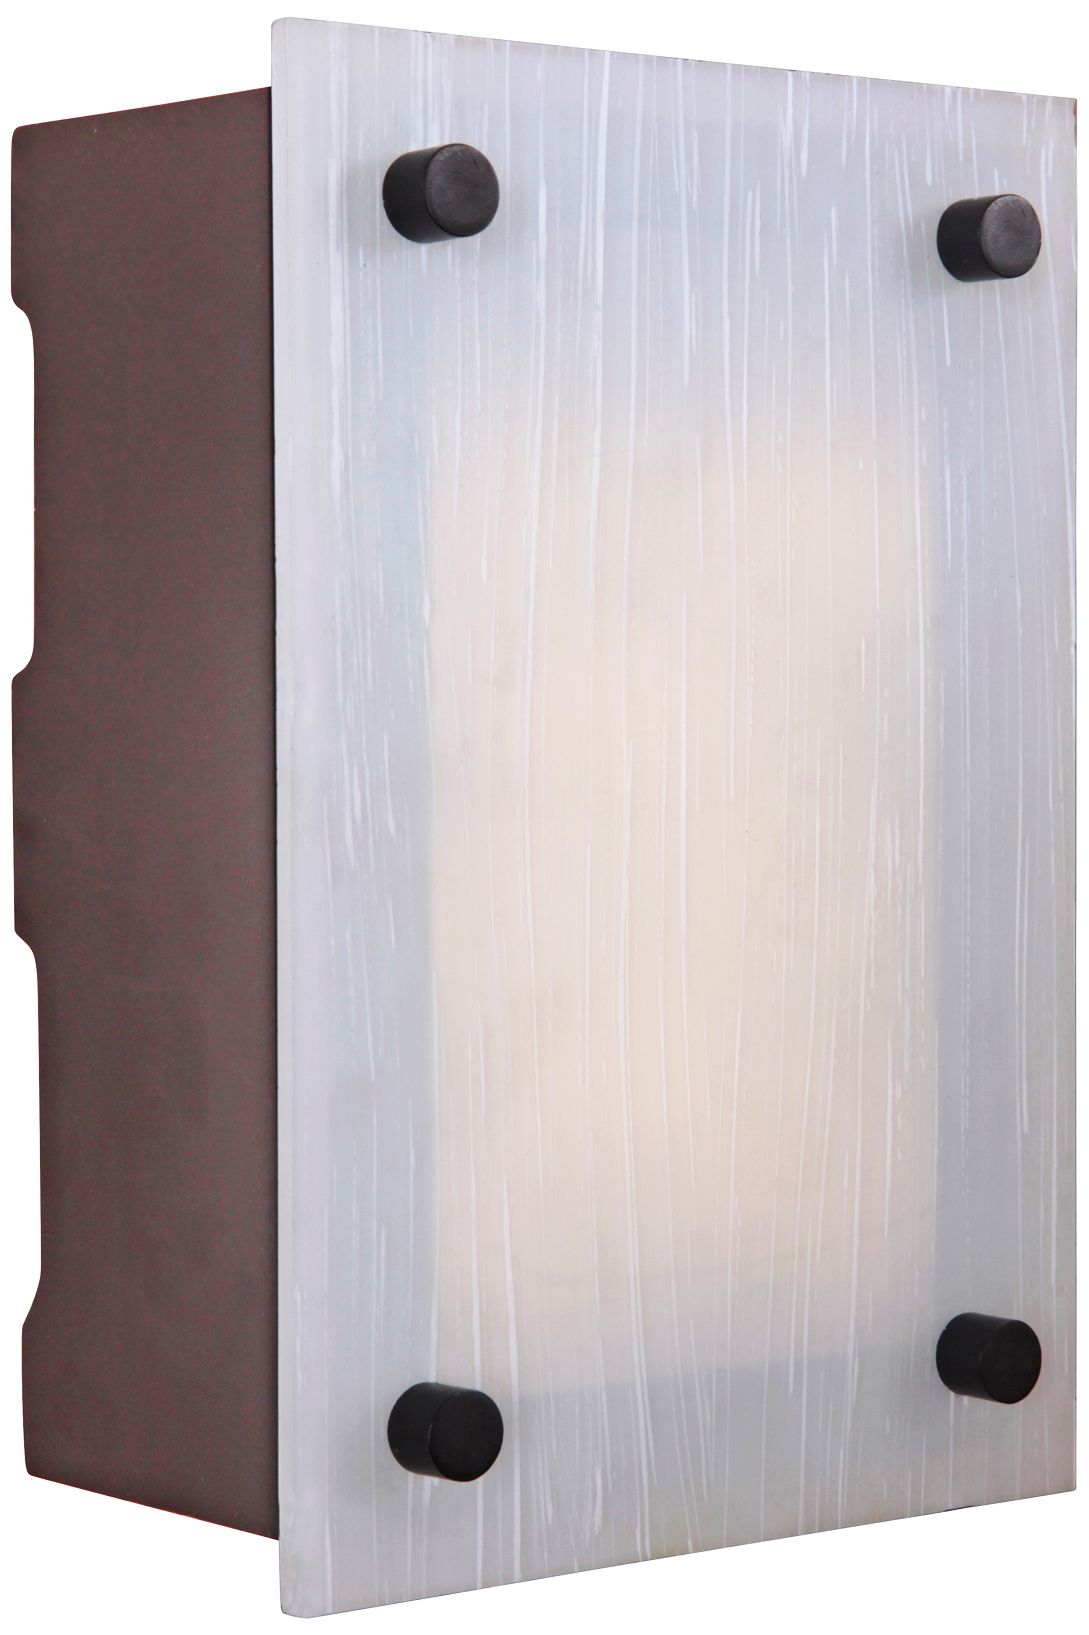 kirby frosted glass 2note door chime